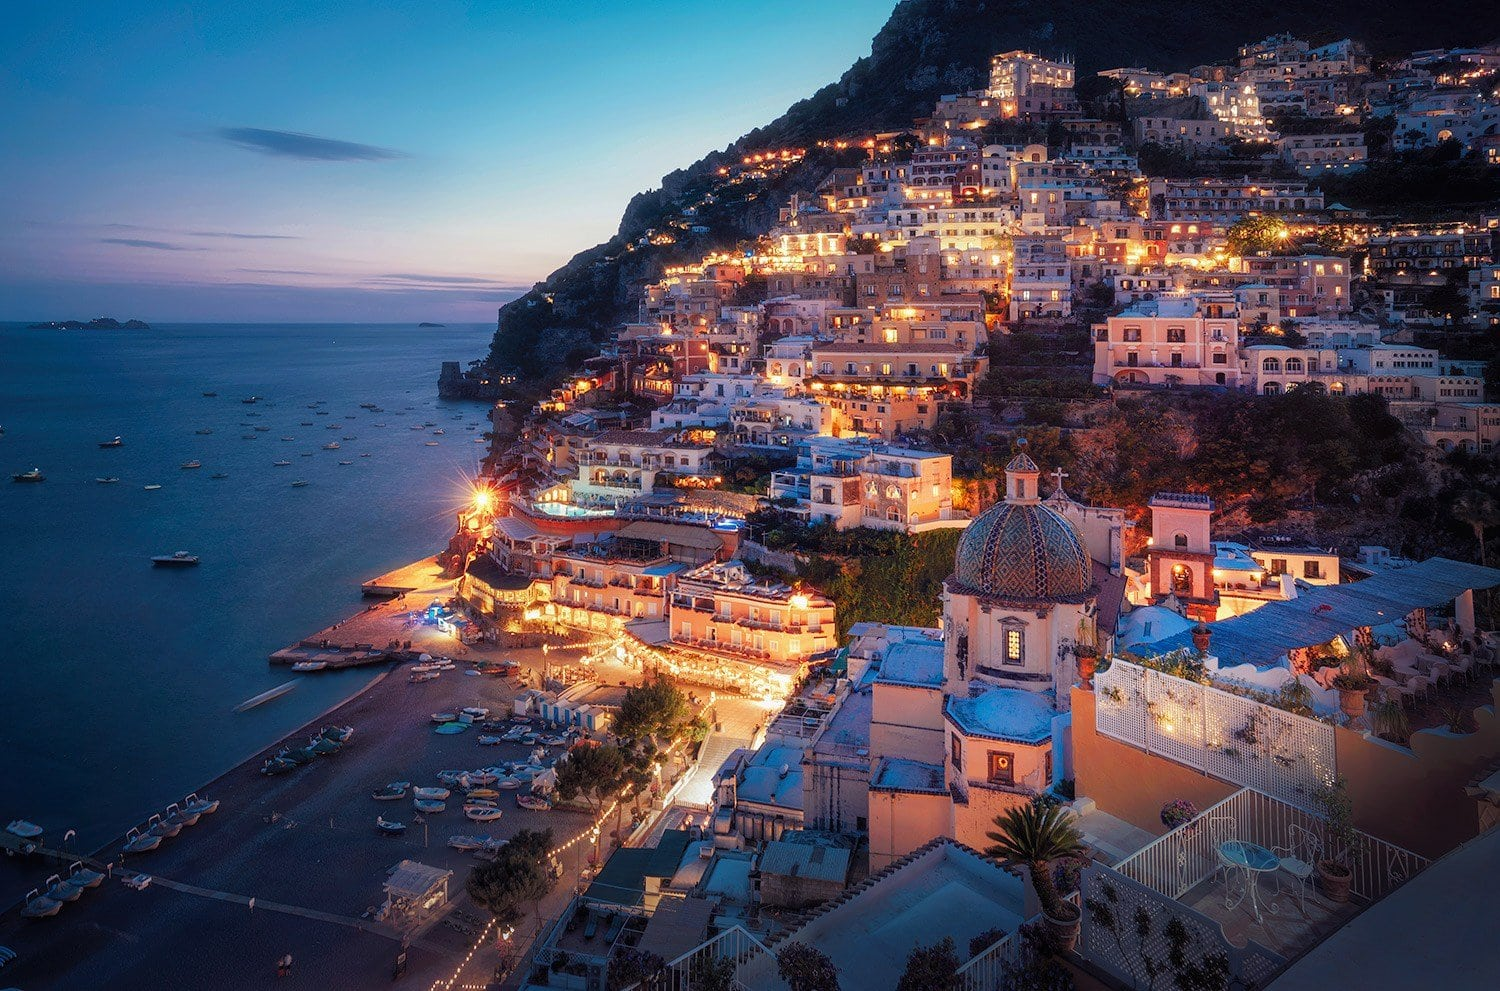 Nightscape Photography Magical Lights in Positano Presetpro.com